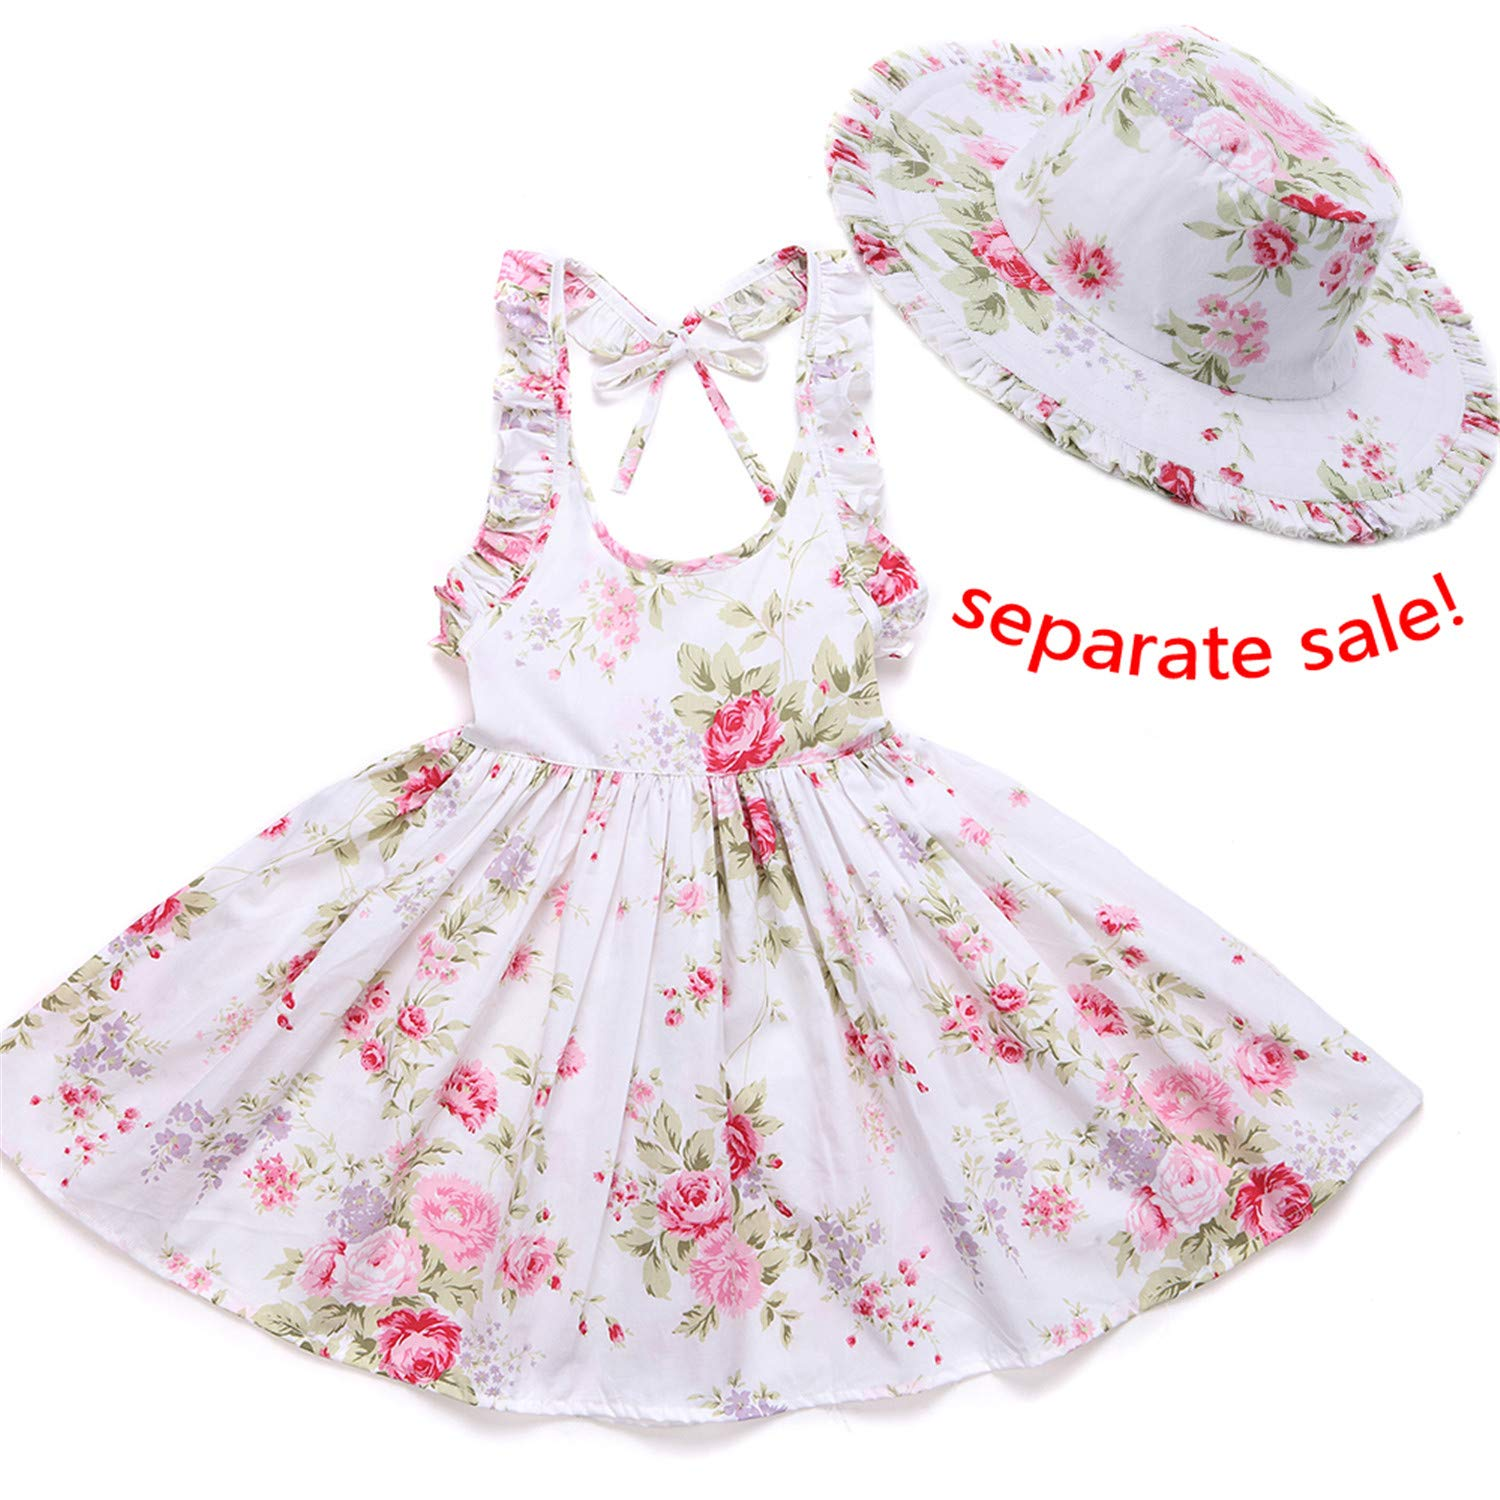 Baby Girls Dress Summer Beach Style Floral Print Party Backless Dresses for Girls Vintage Toddler Girl Clothing 1-8Yrs